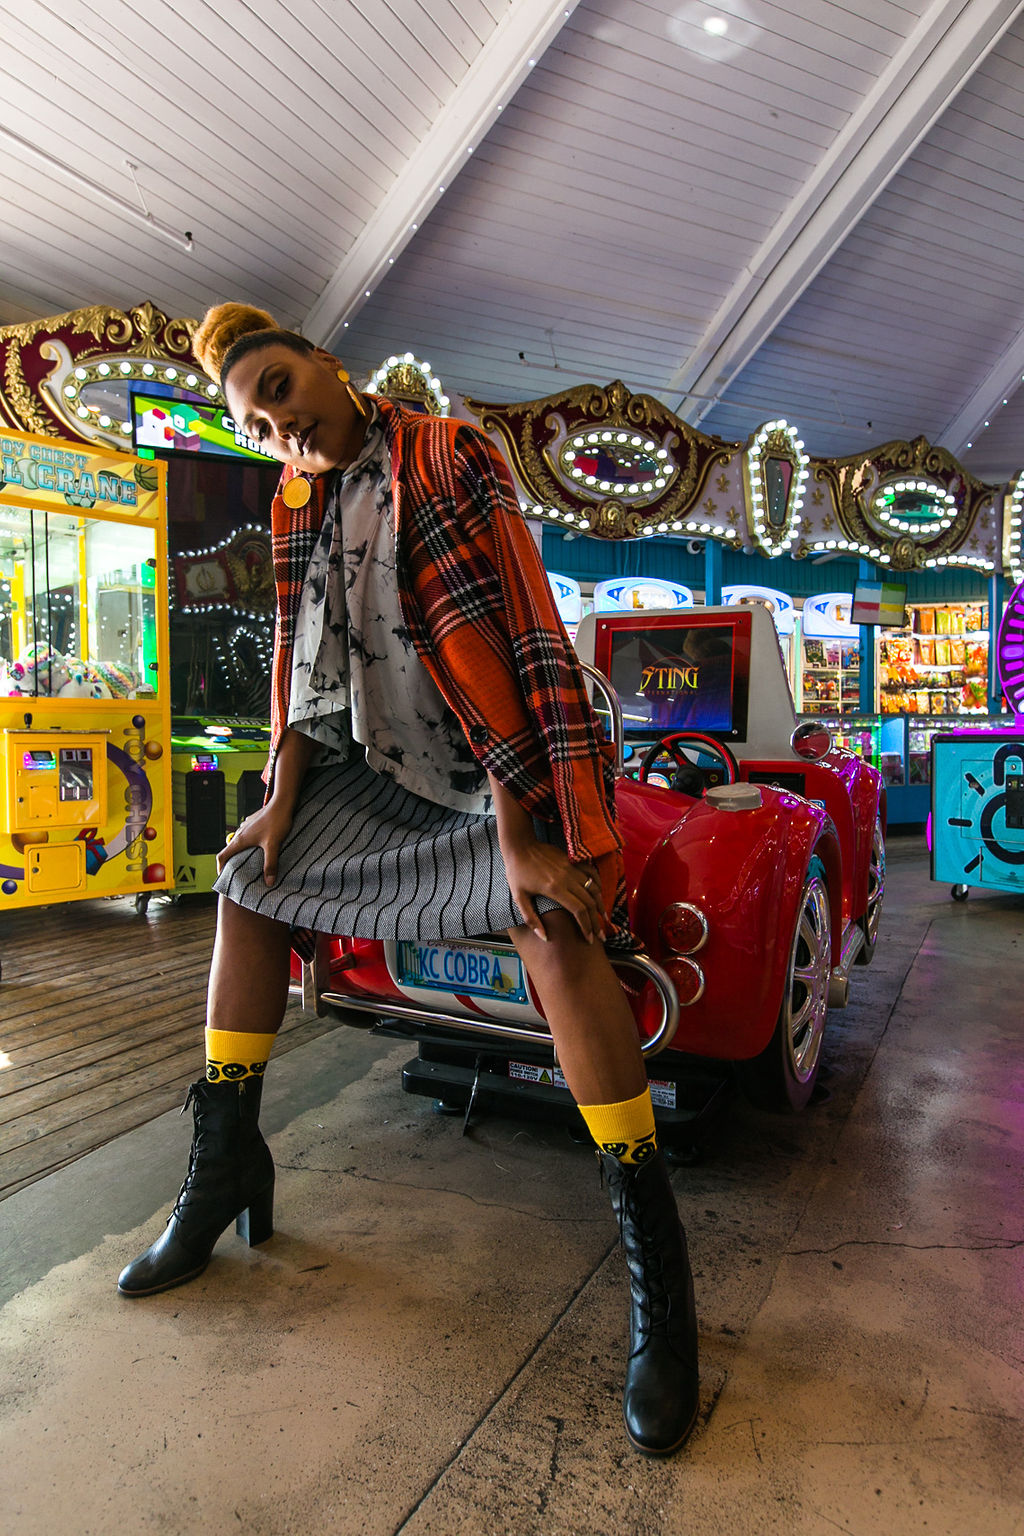 arcade-toy car-fashion photoshoot-nordstrom rack-susina-long beach marina-rsee-xmmtt-wear who you are